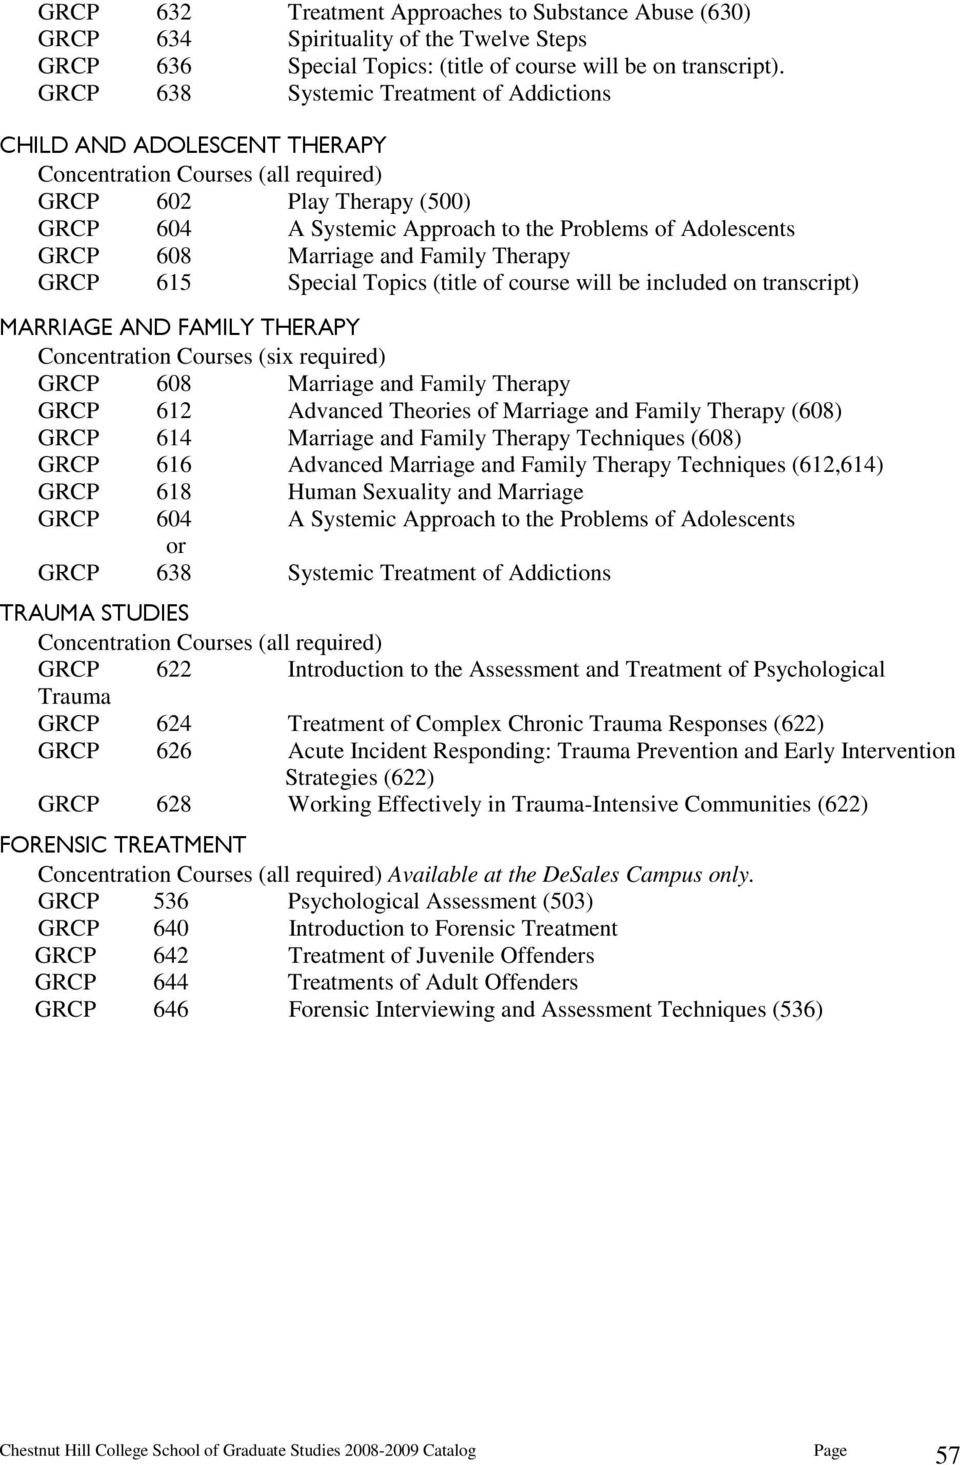 GRCP 608 Marriage and Family Therapy GRCP 615 Special Topics (title of course will be included on transcript) MARRIAGE AND FAMILY THERAPY Concentration Courses (six required) GRCP 608 Marriage and